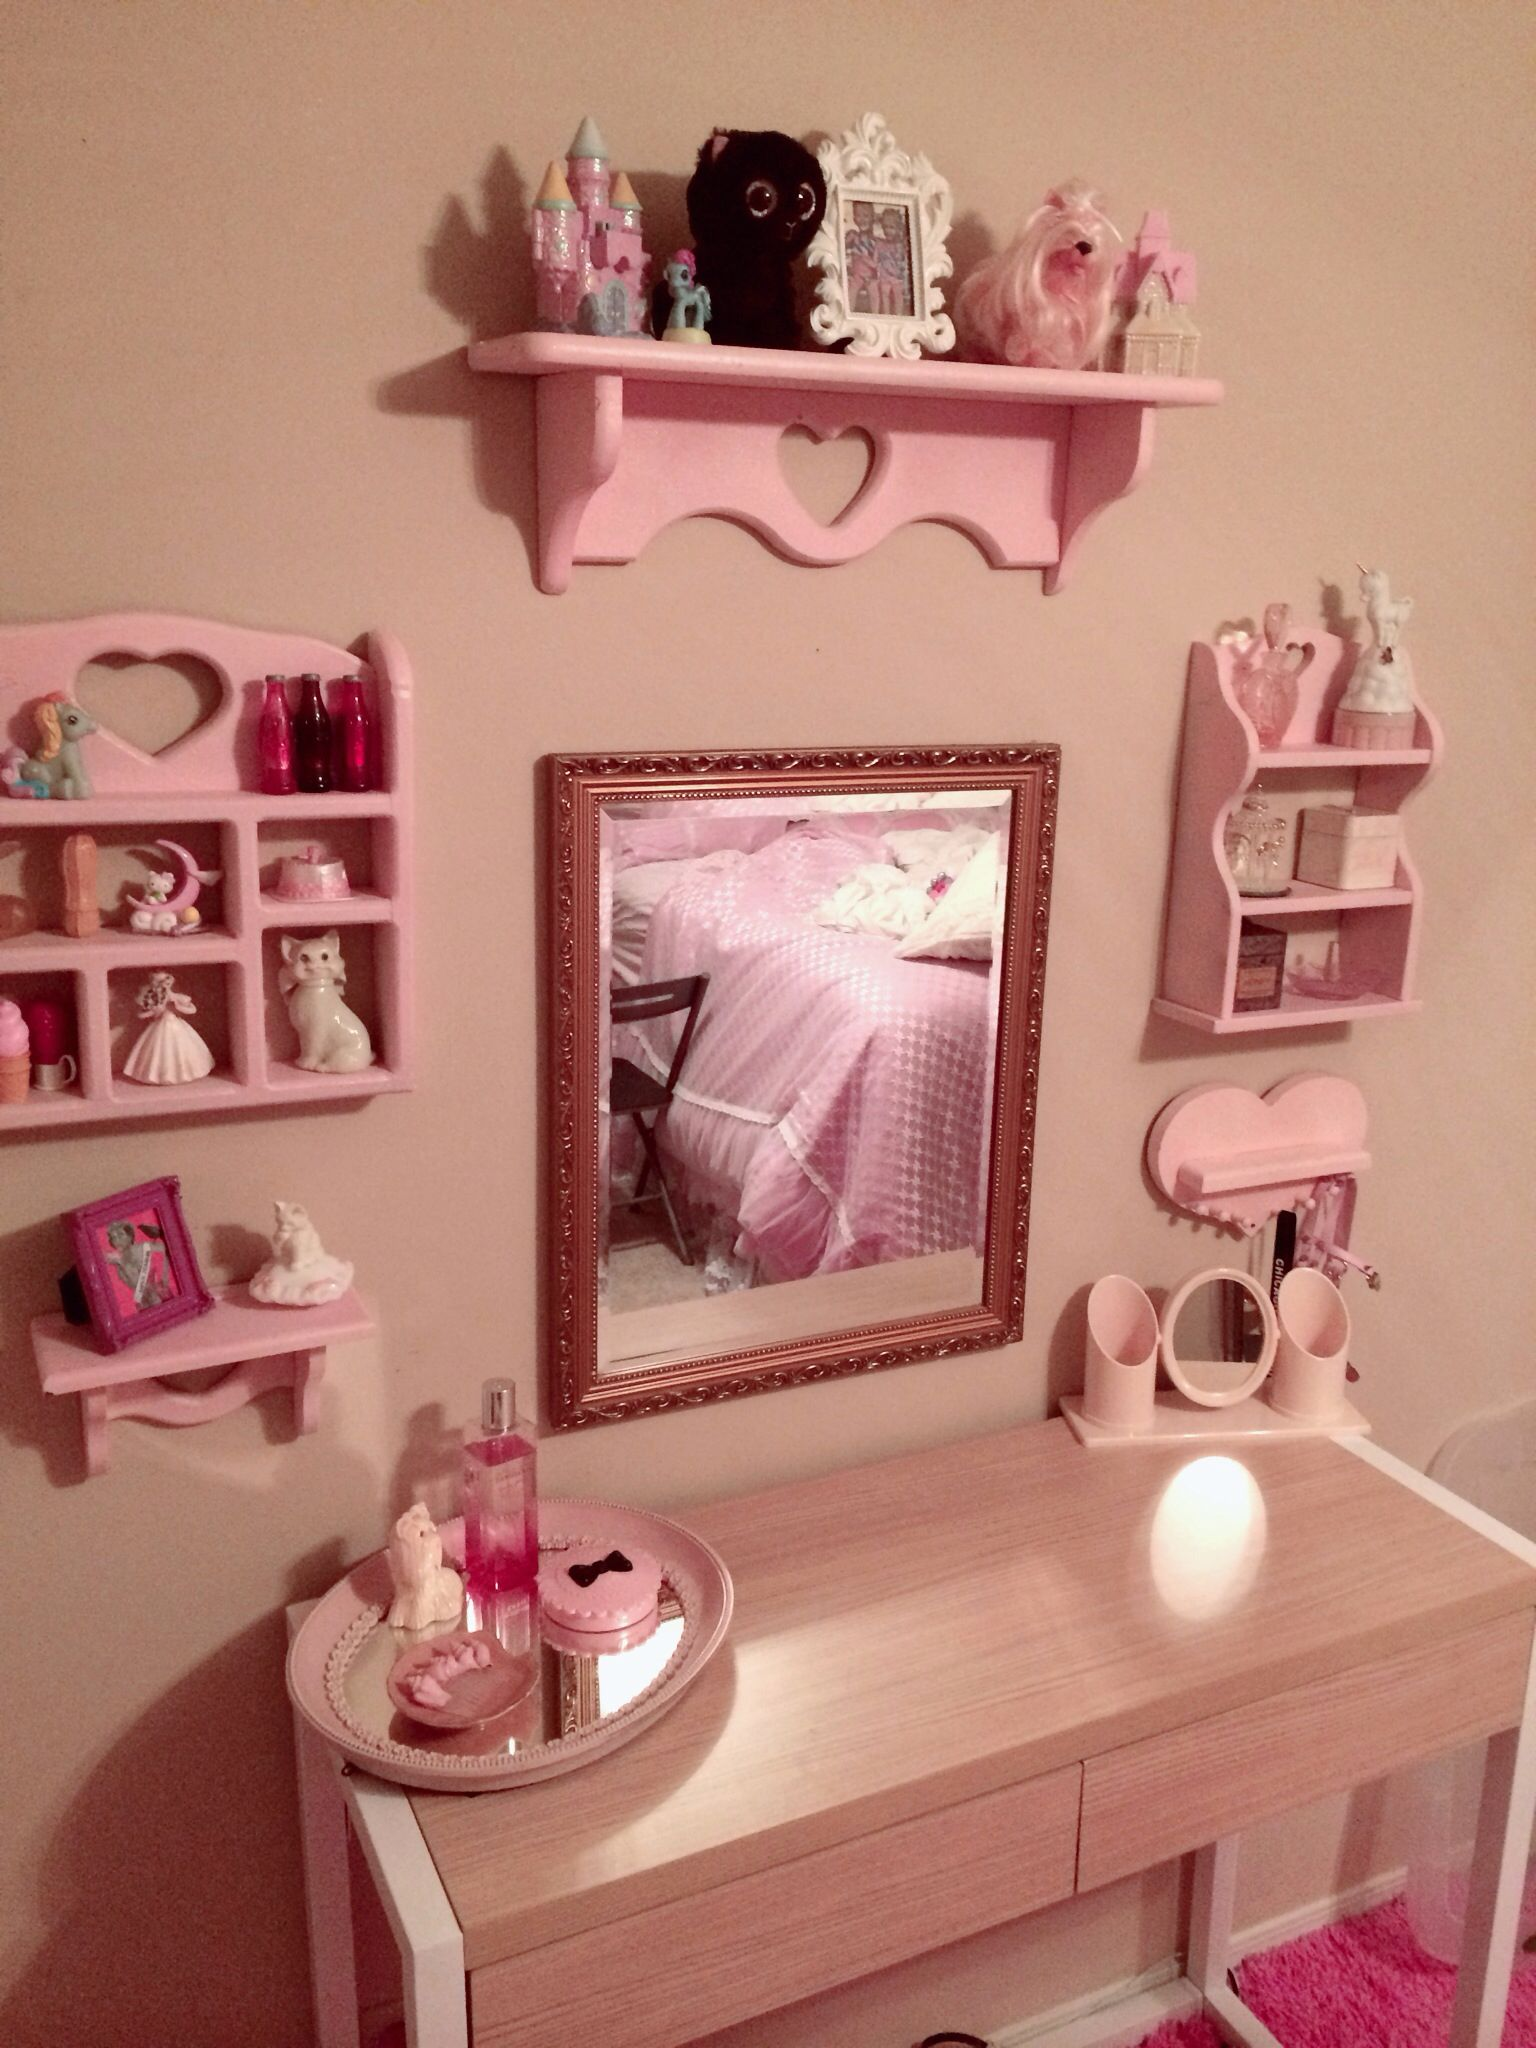 Re purposes shelf painted pink and glitter Lolita